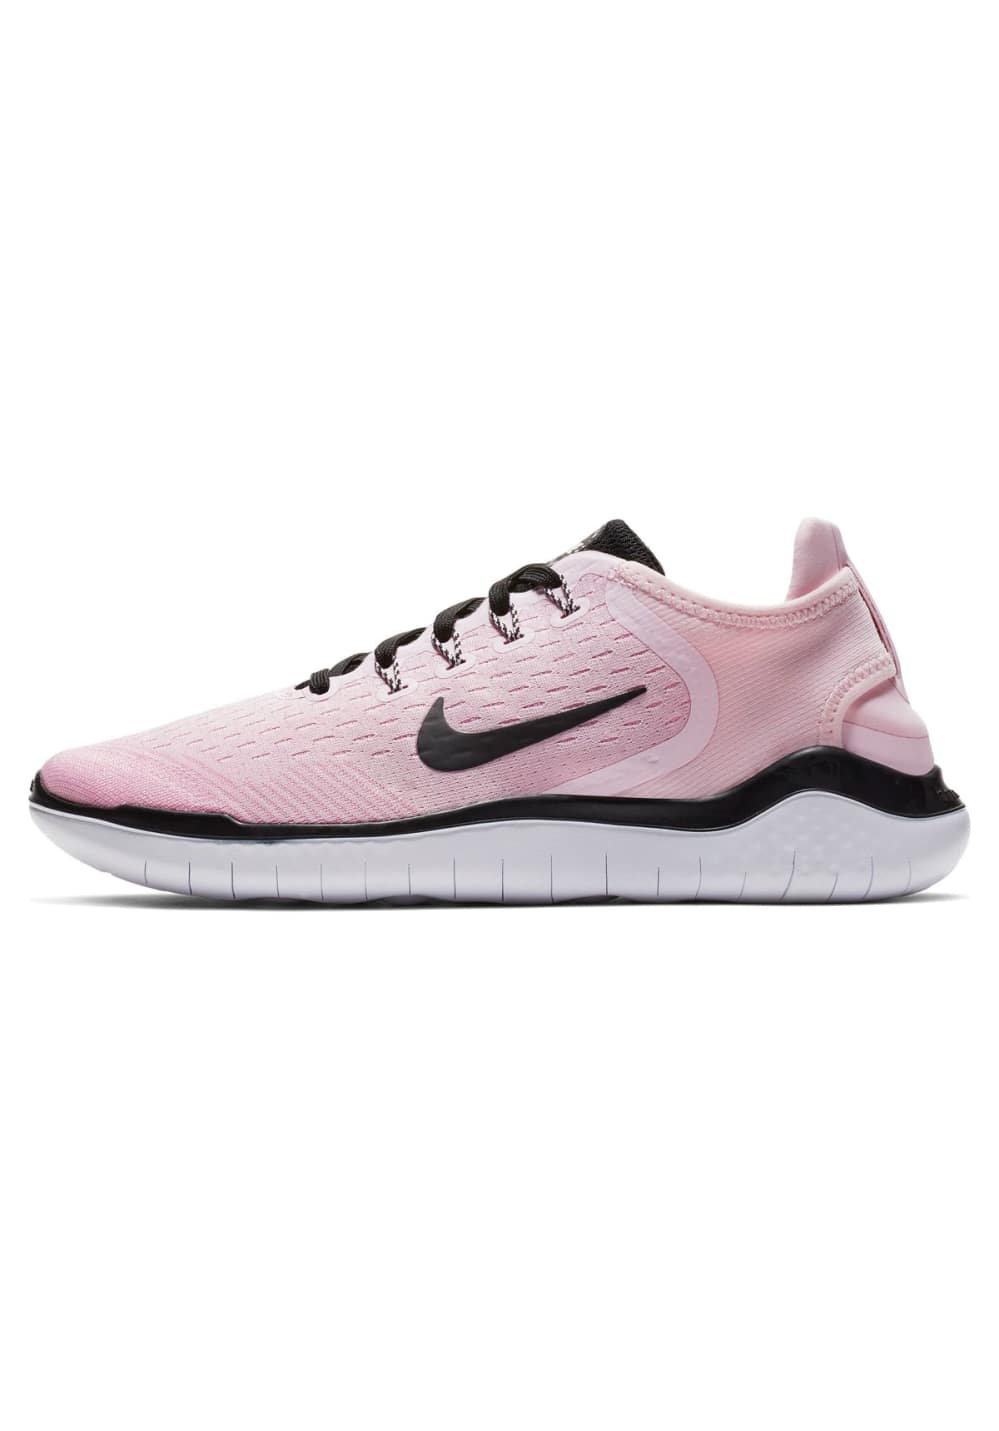 reputable site 3ec15 ea3b3 Nike Free RN 2018 - Running shoes for Women - Pink